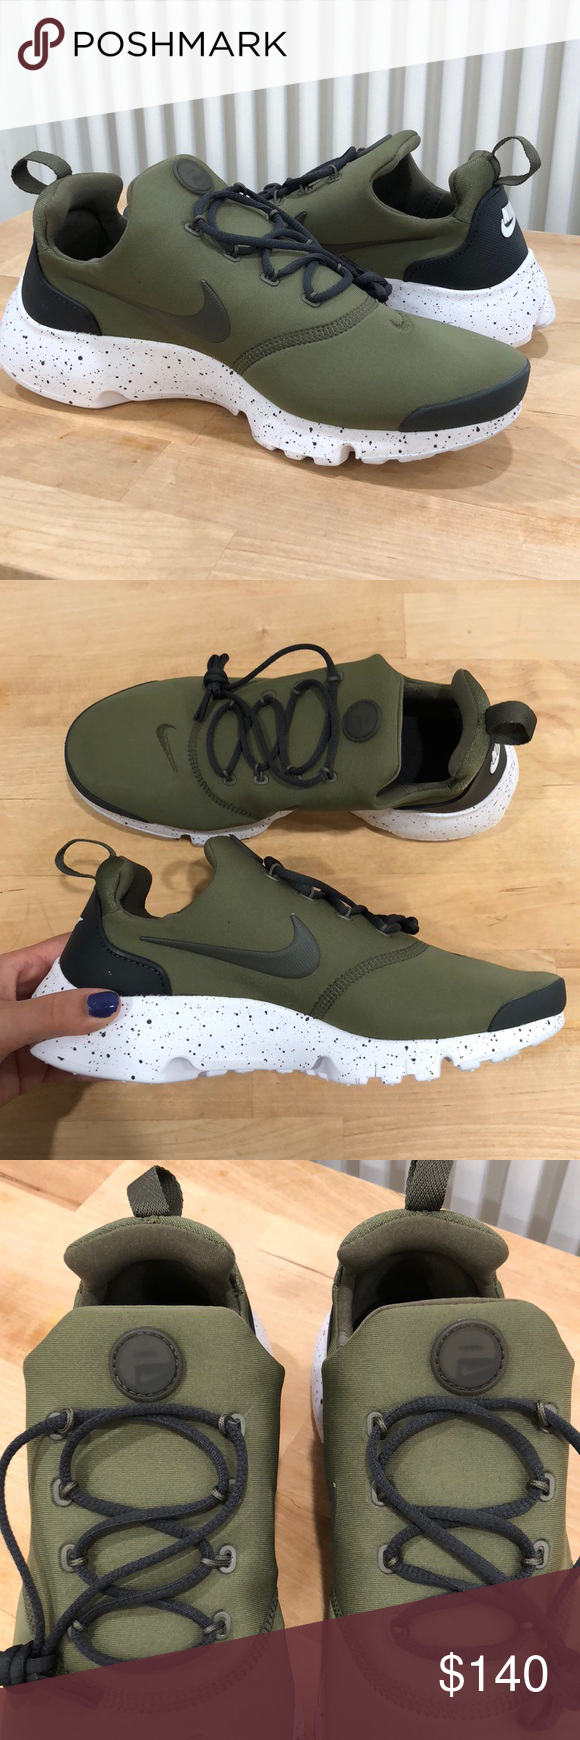 3f40123dfb0 OLIVE GREEN NIKE PRESTO FLY! Brand new with box! These are a size 6 ...